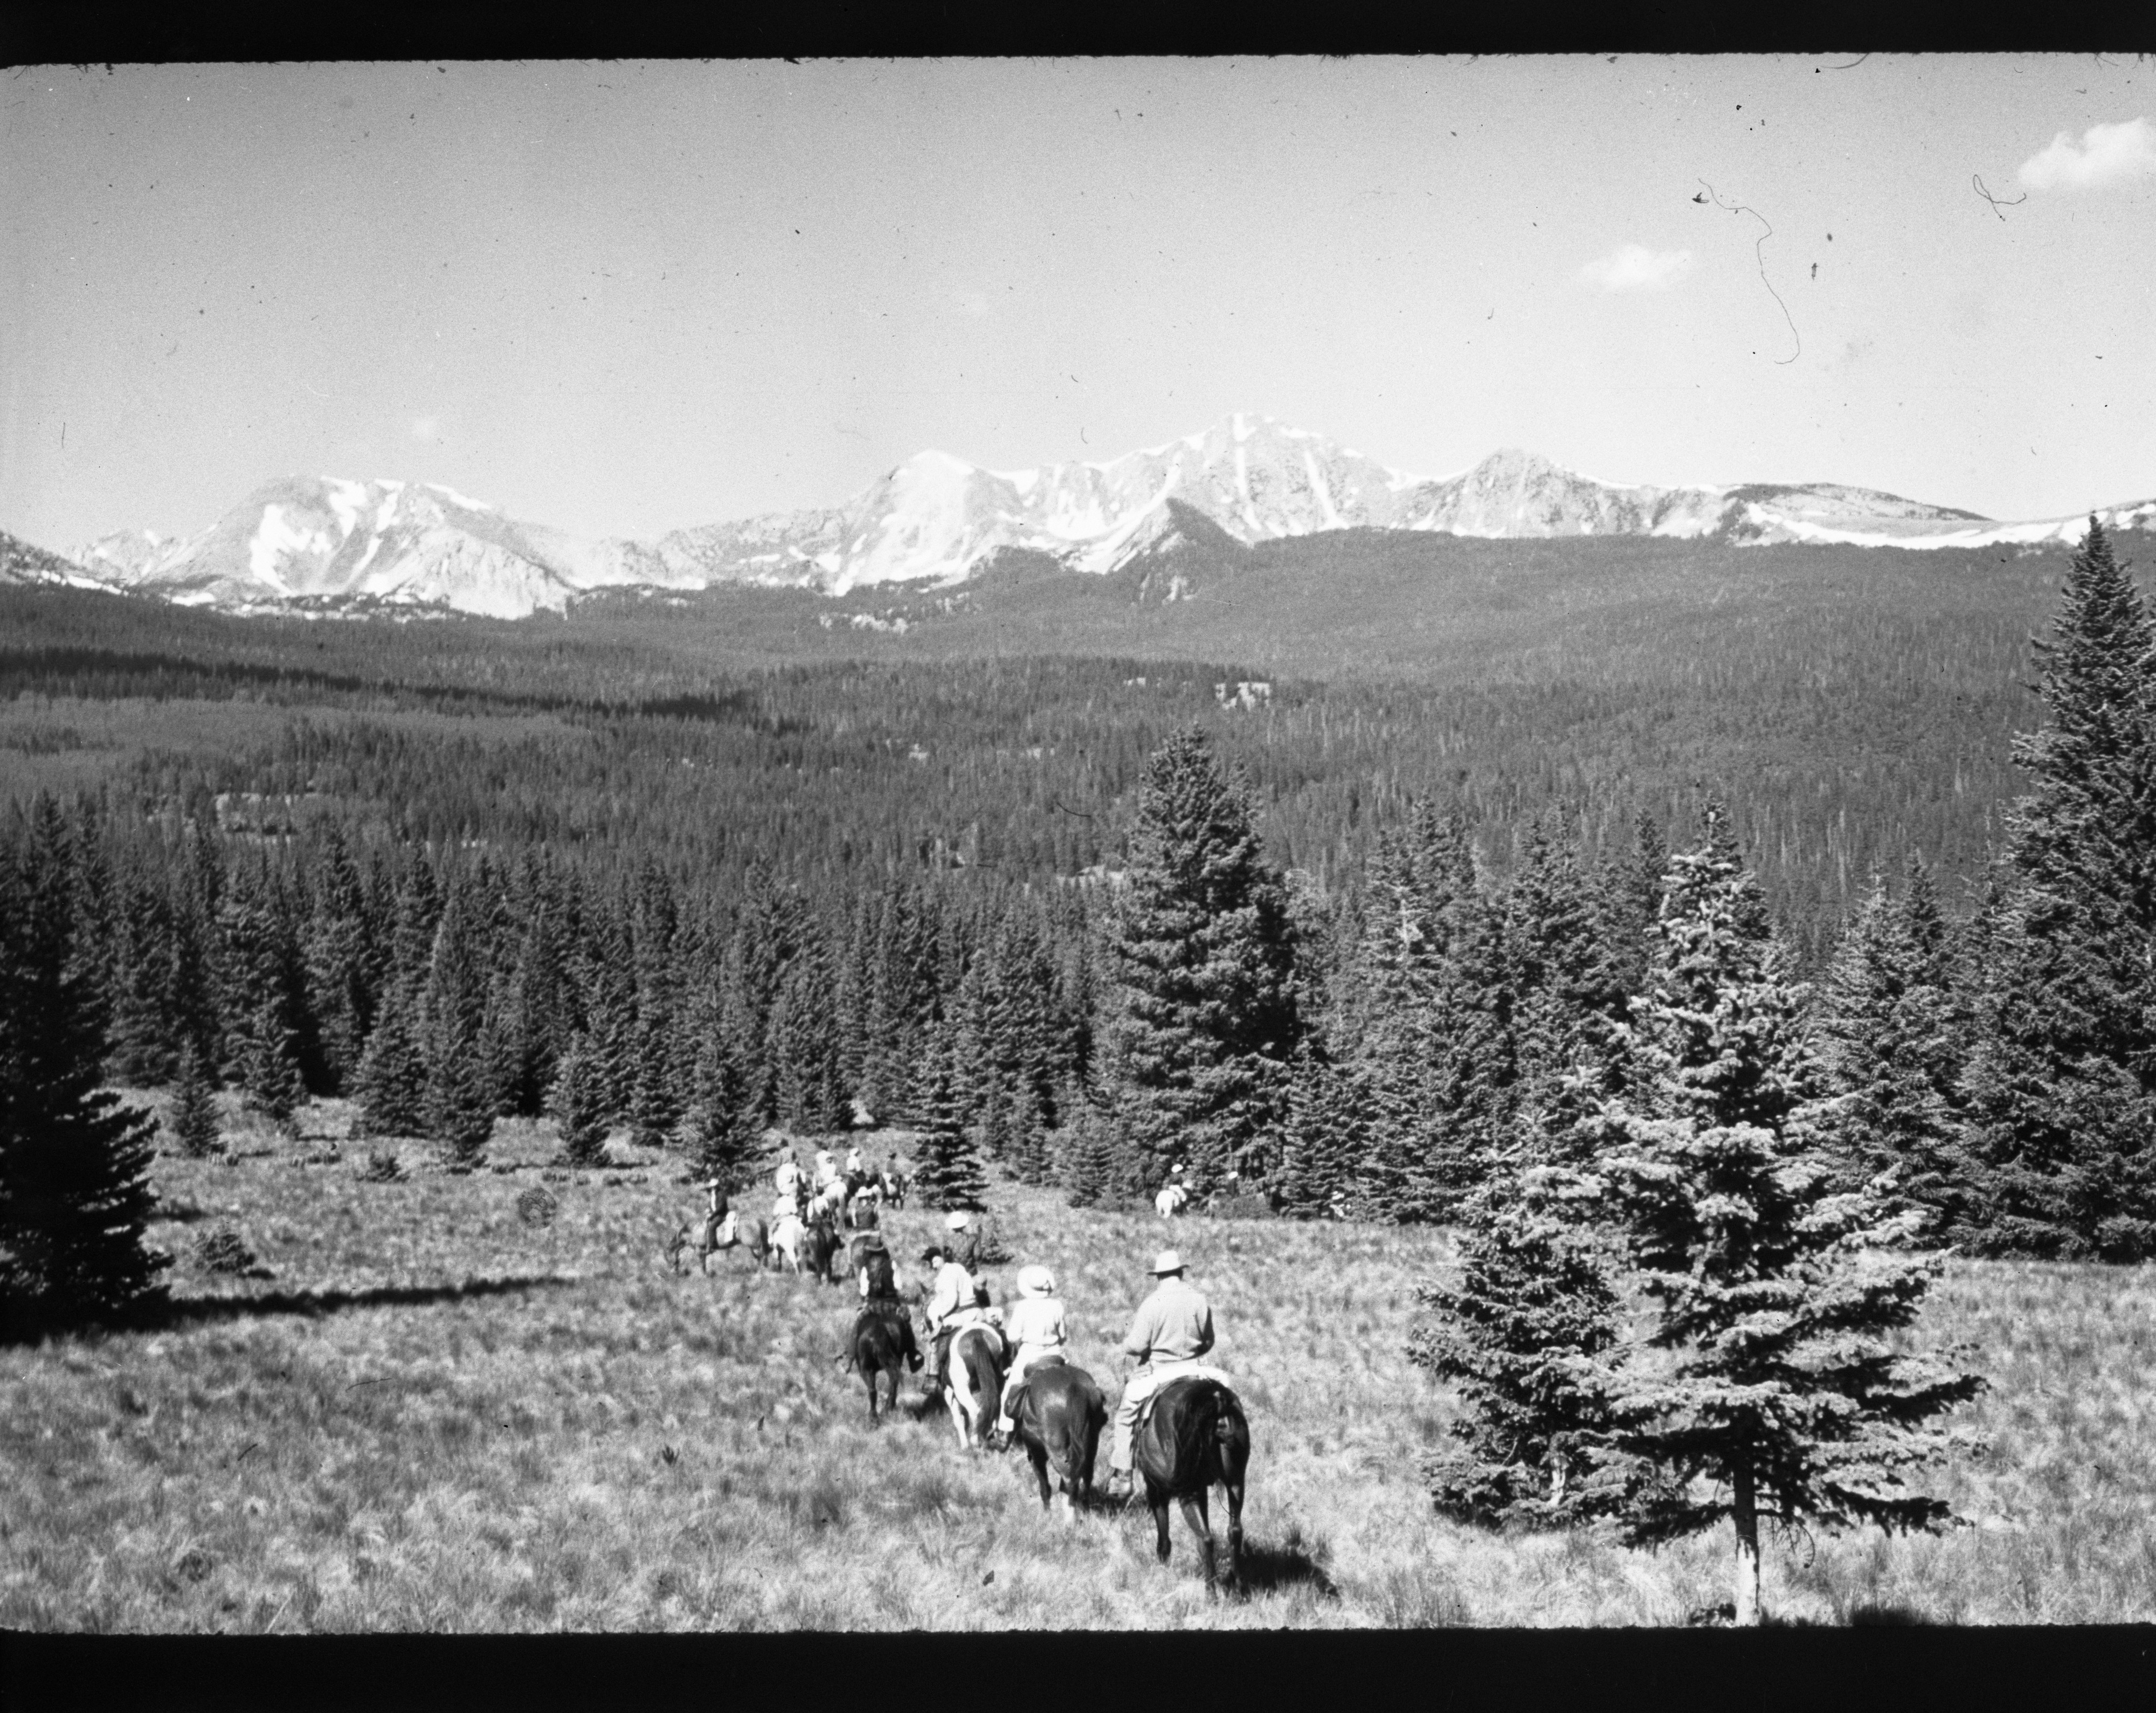 Riders on the trail in Pecos Wilderness Area, April 1969 image